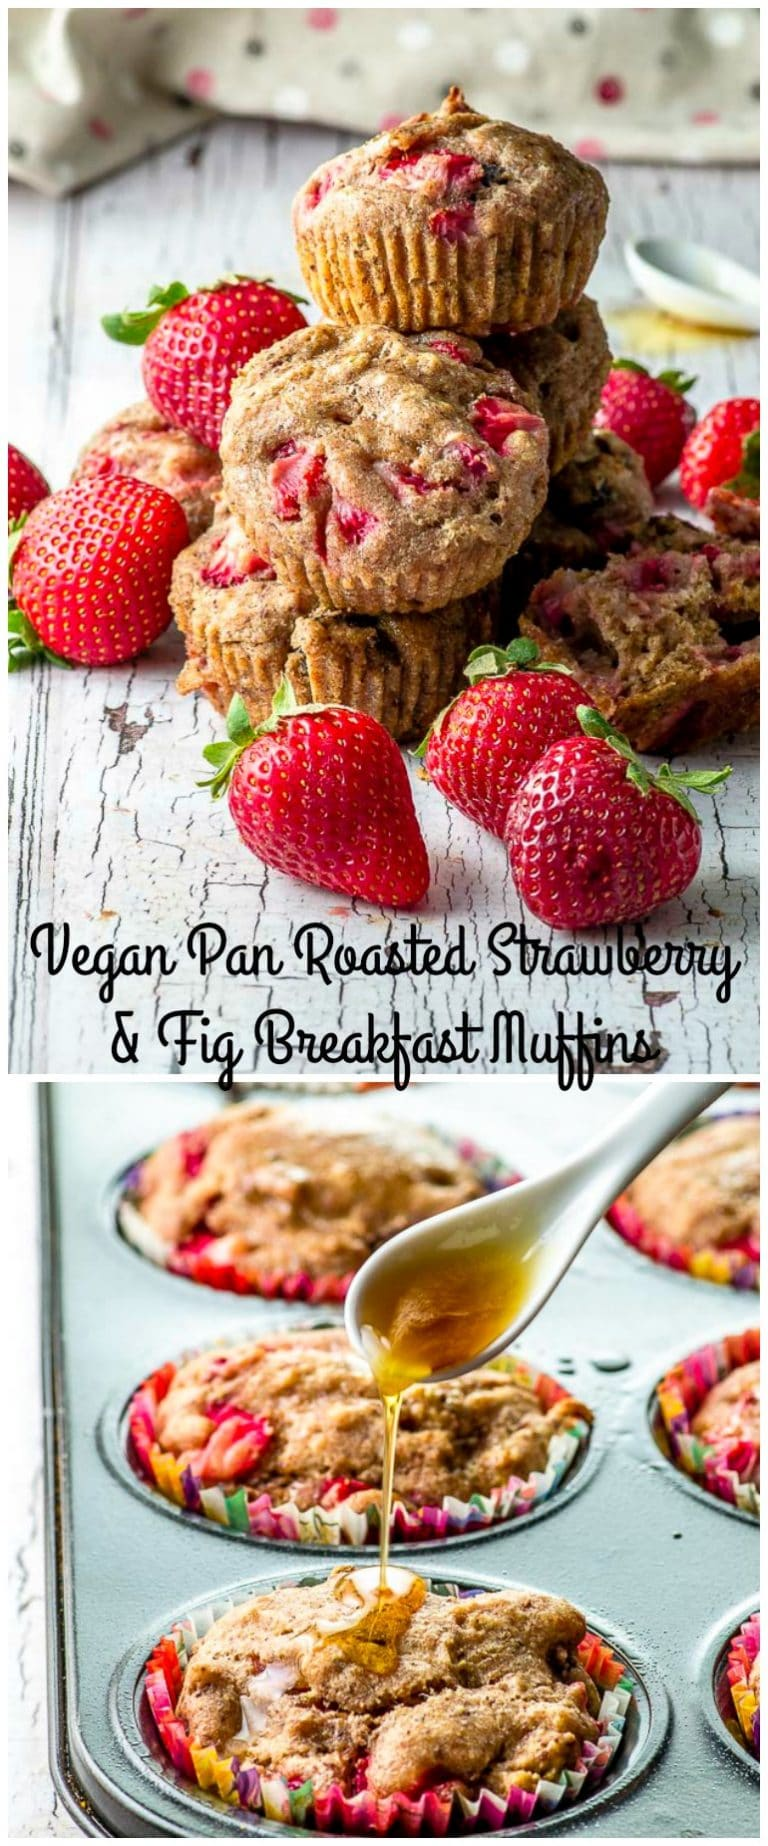 These Pan Roasted Strawberry and Fig Breakfast Muffins are refined sugar free, made with spelt flour and healthy enough to eat for breakfast. #breakfast #muffins #strawberries #healthy #spelt